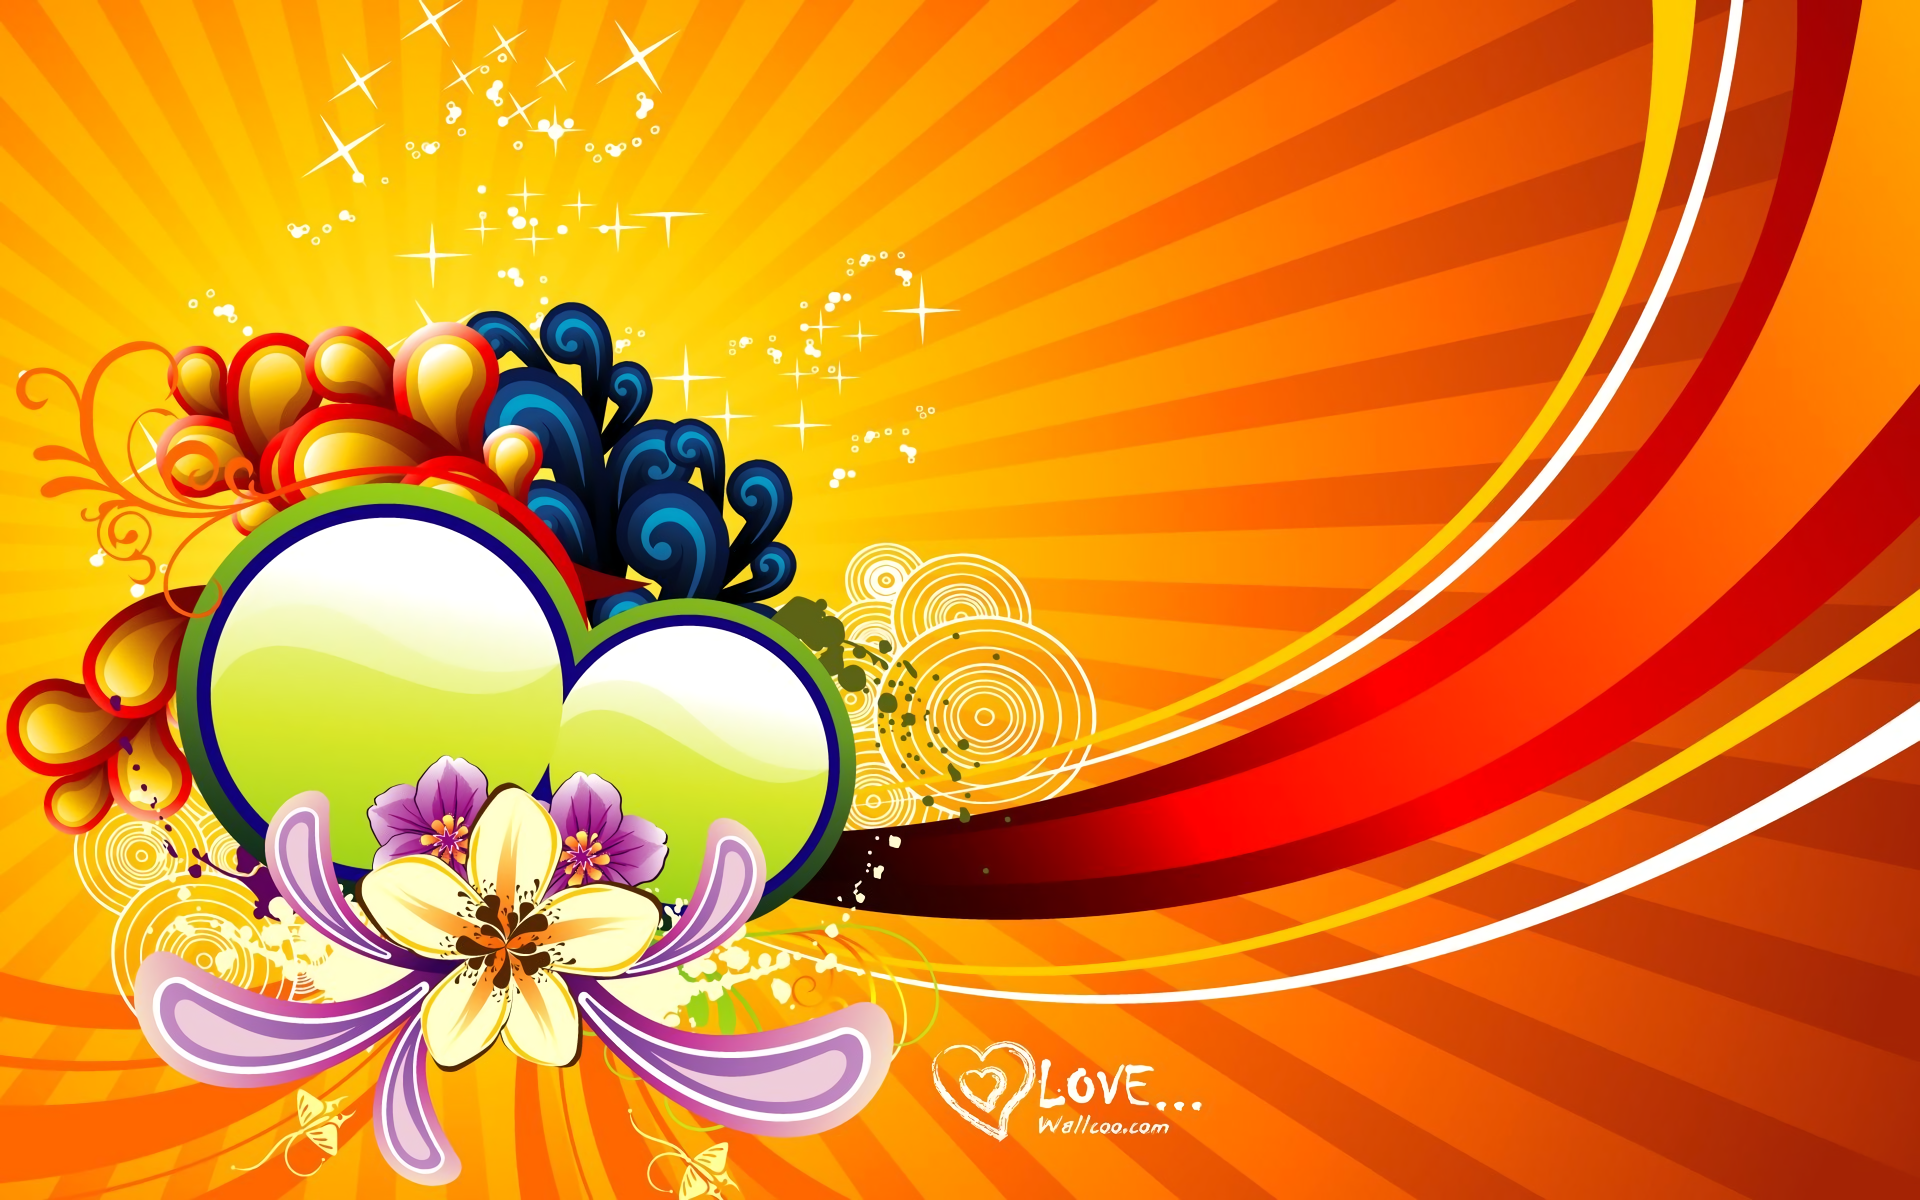 Colorful Love Vector Full HD Wallpaper And Background Image